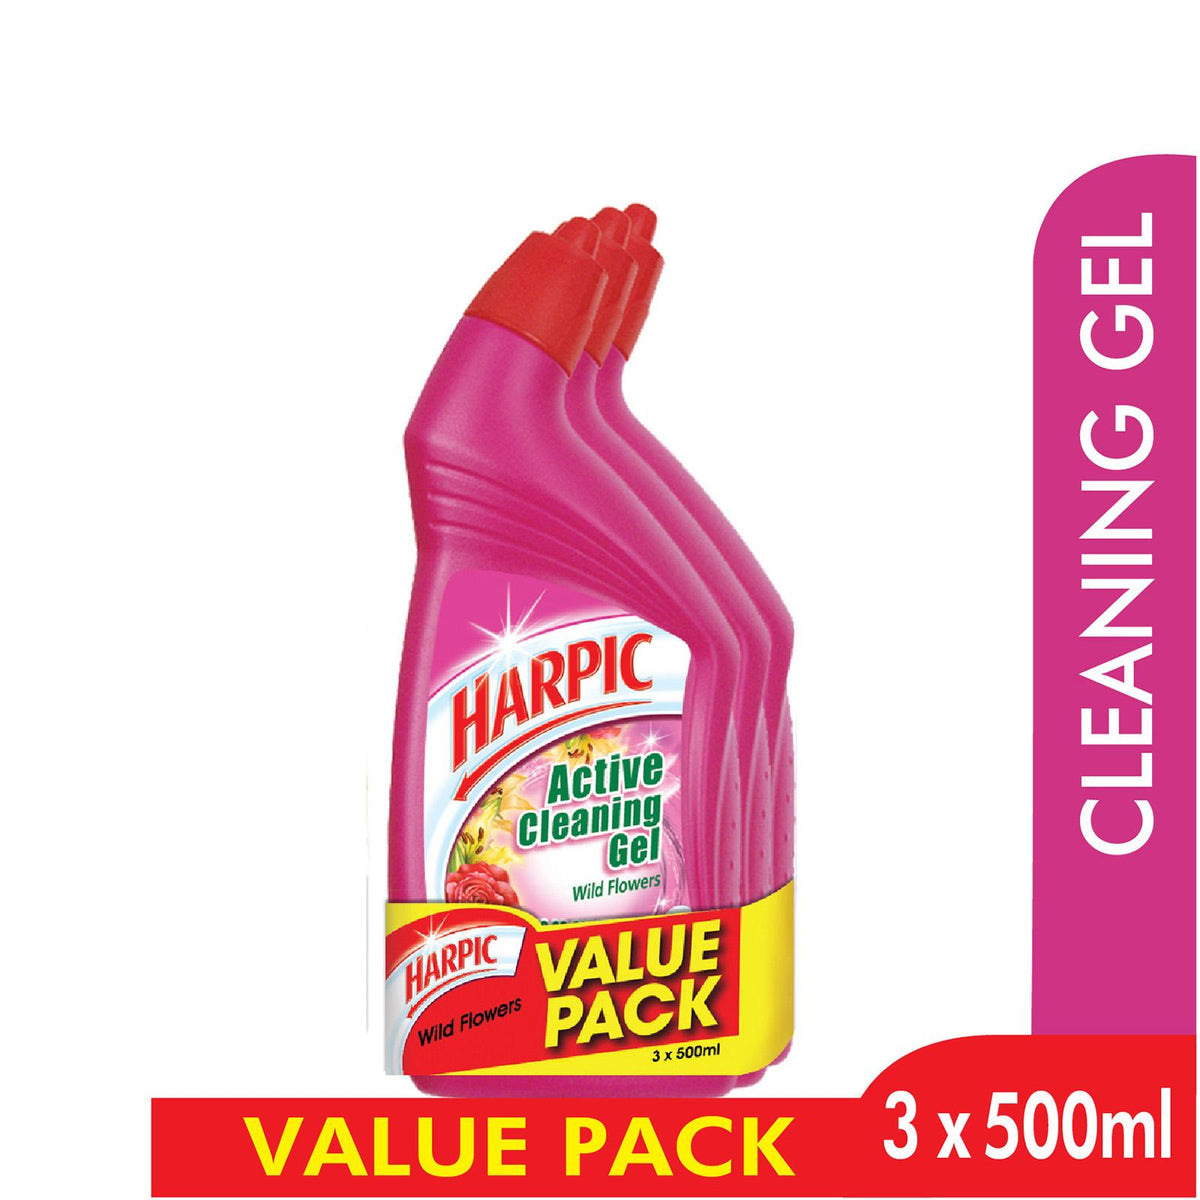 Harpic Active Cleaning Gel 3x500ml Wild Flower Provisionshop Com